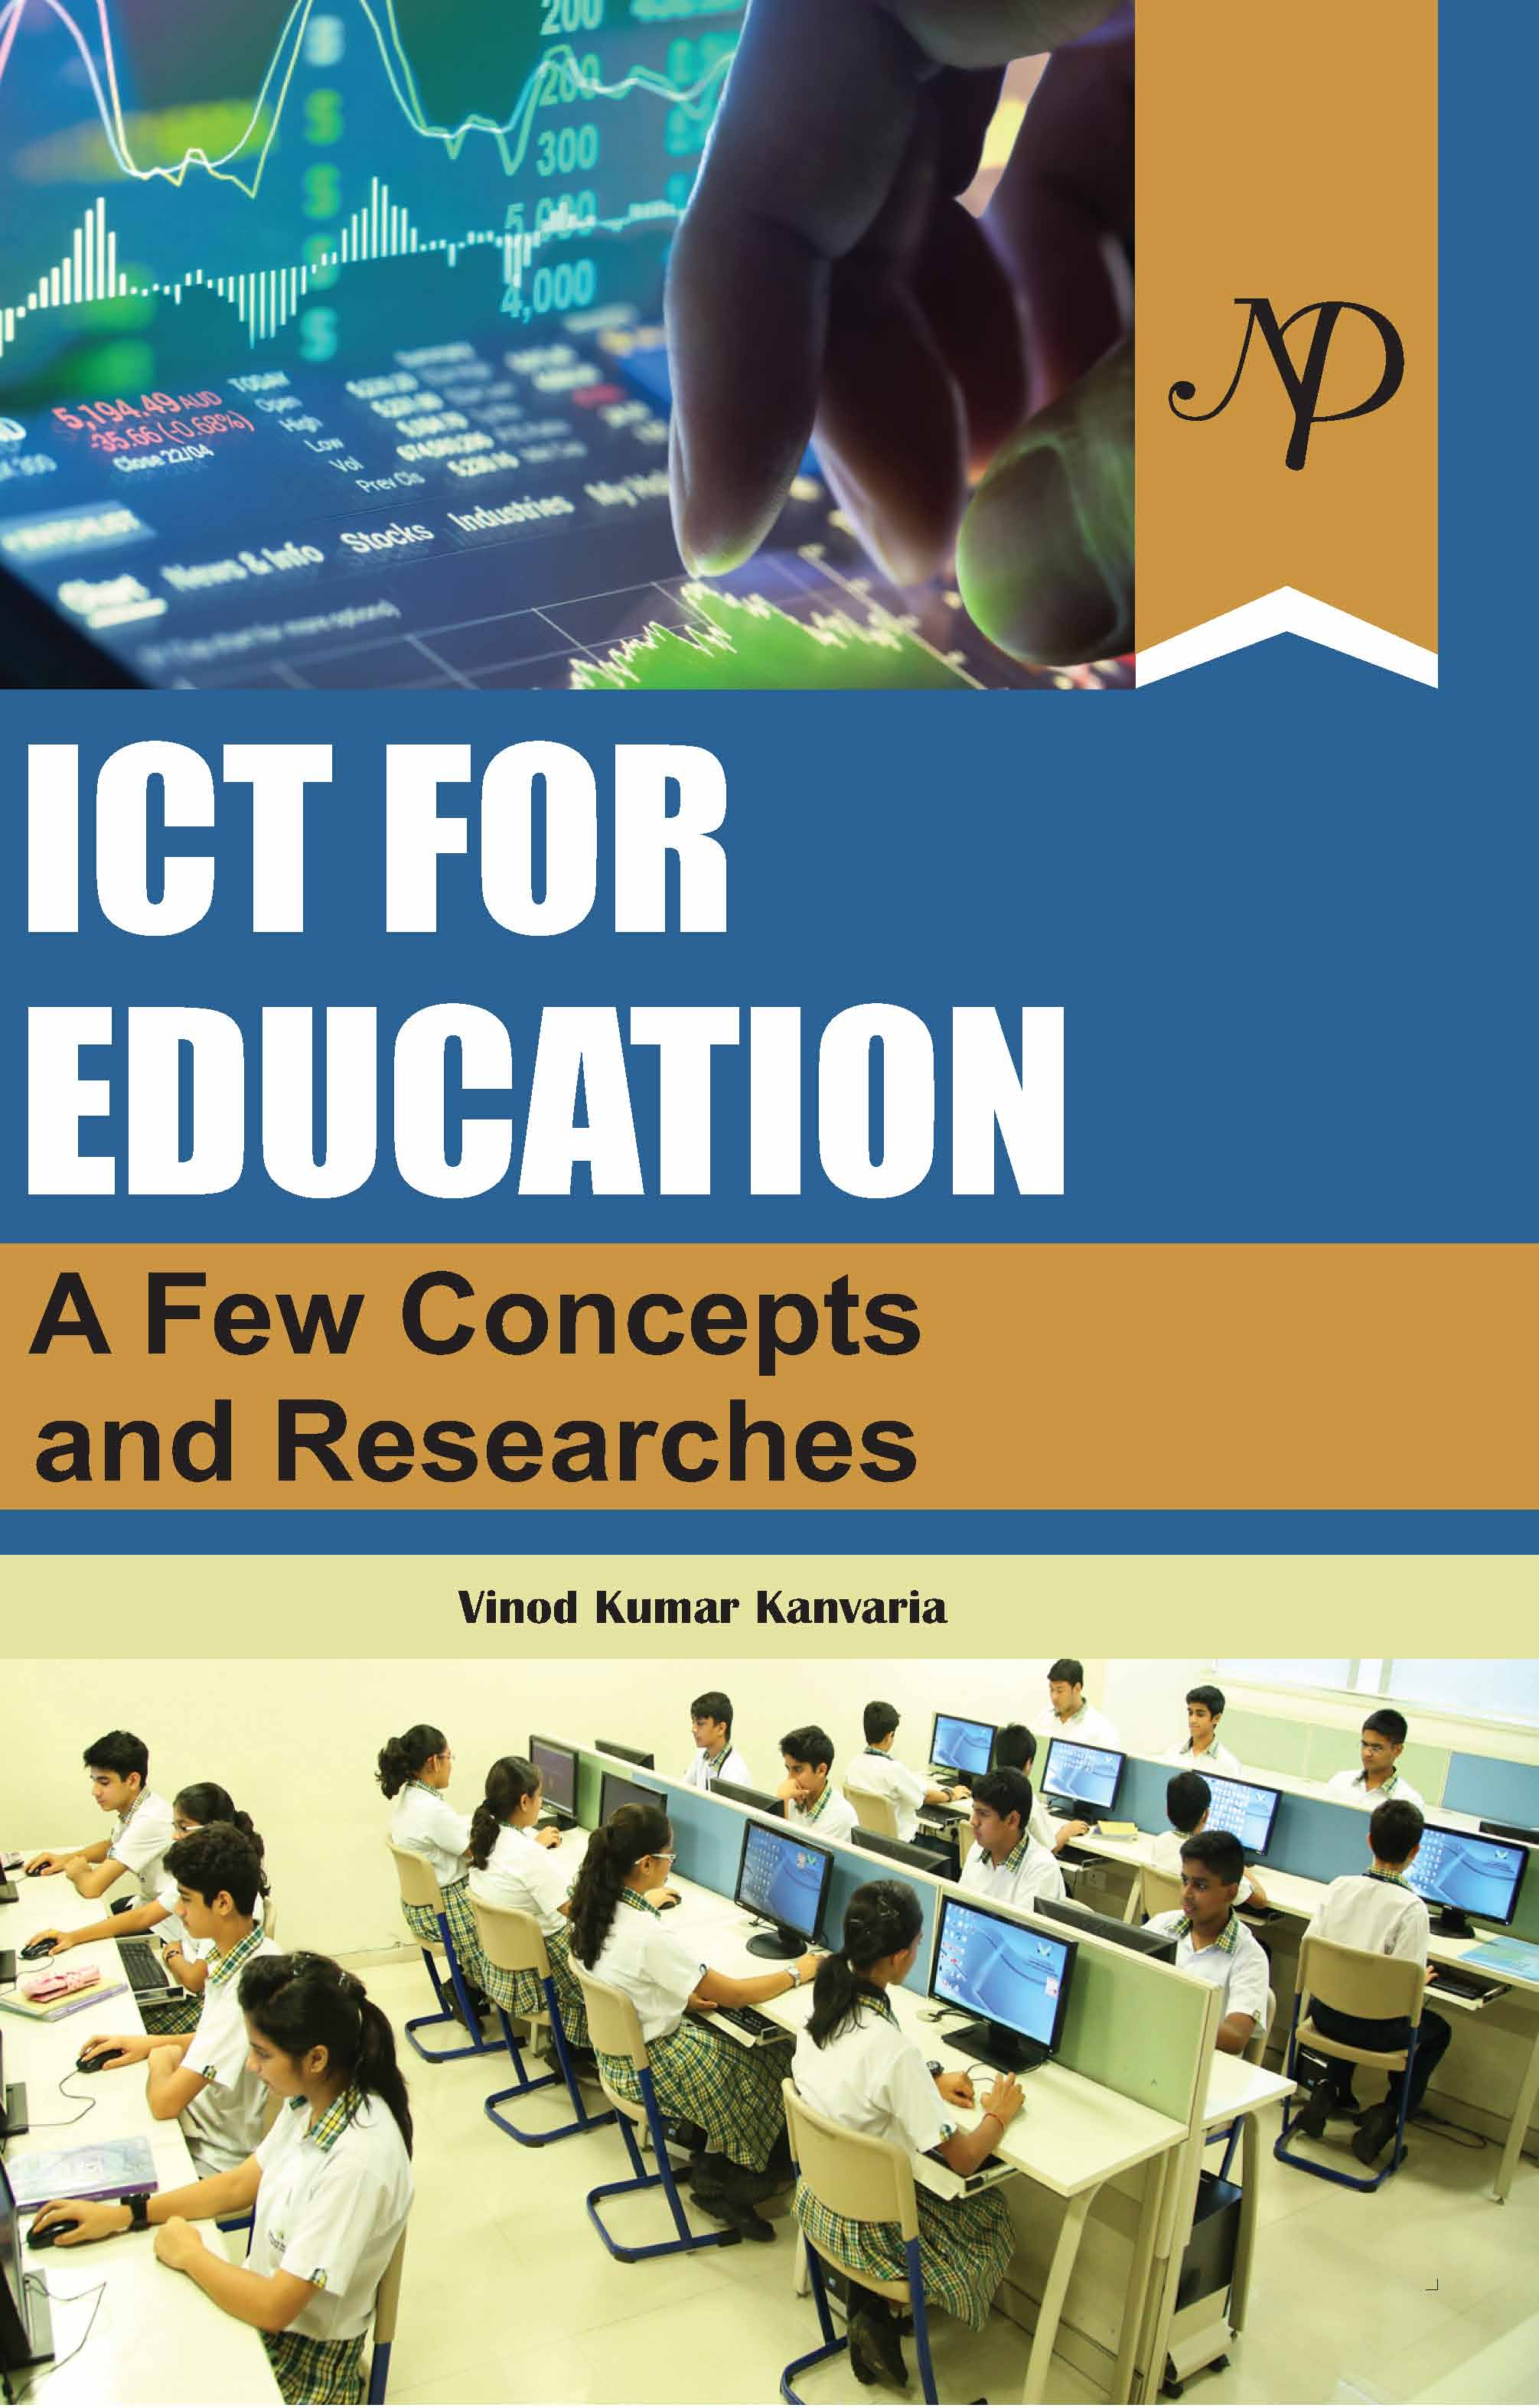 Cover ICT for Education A Few Concepts and Researches.pdf final.jpg